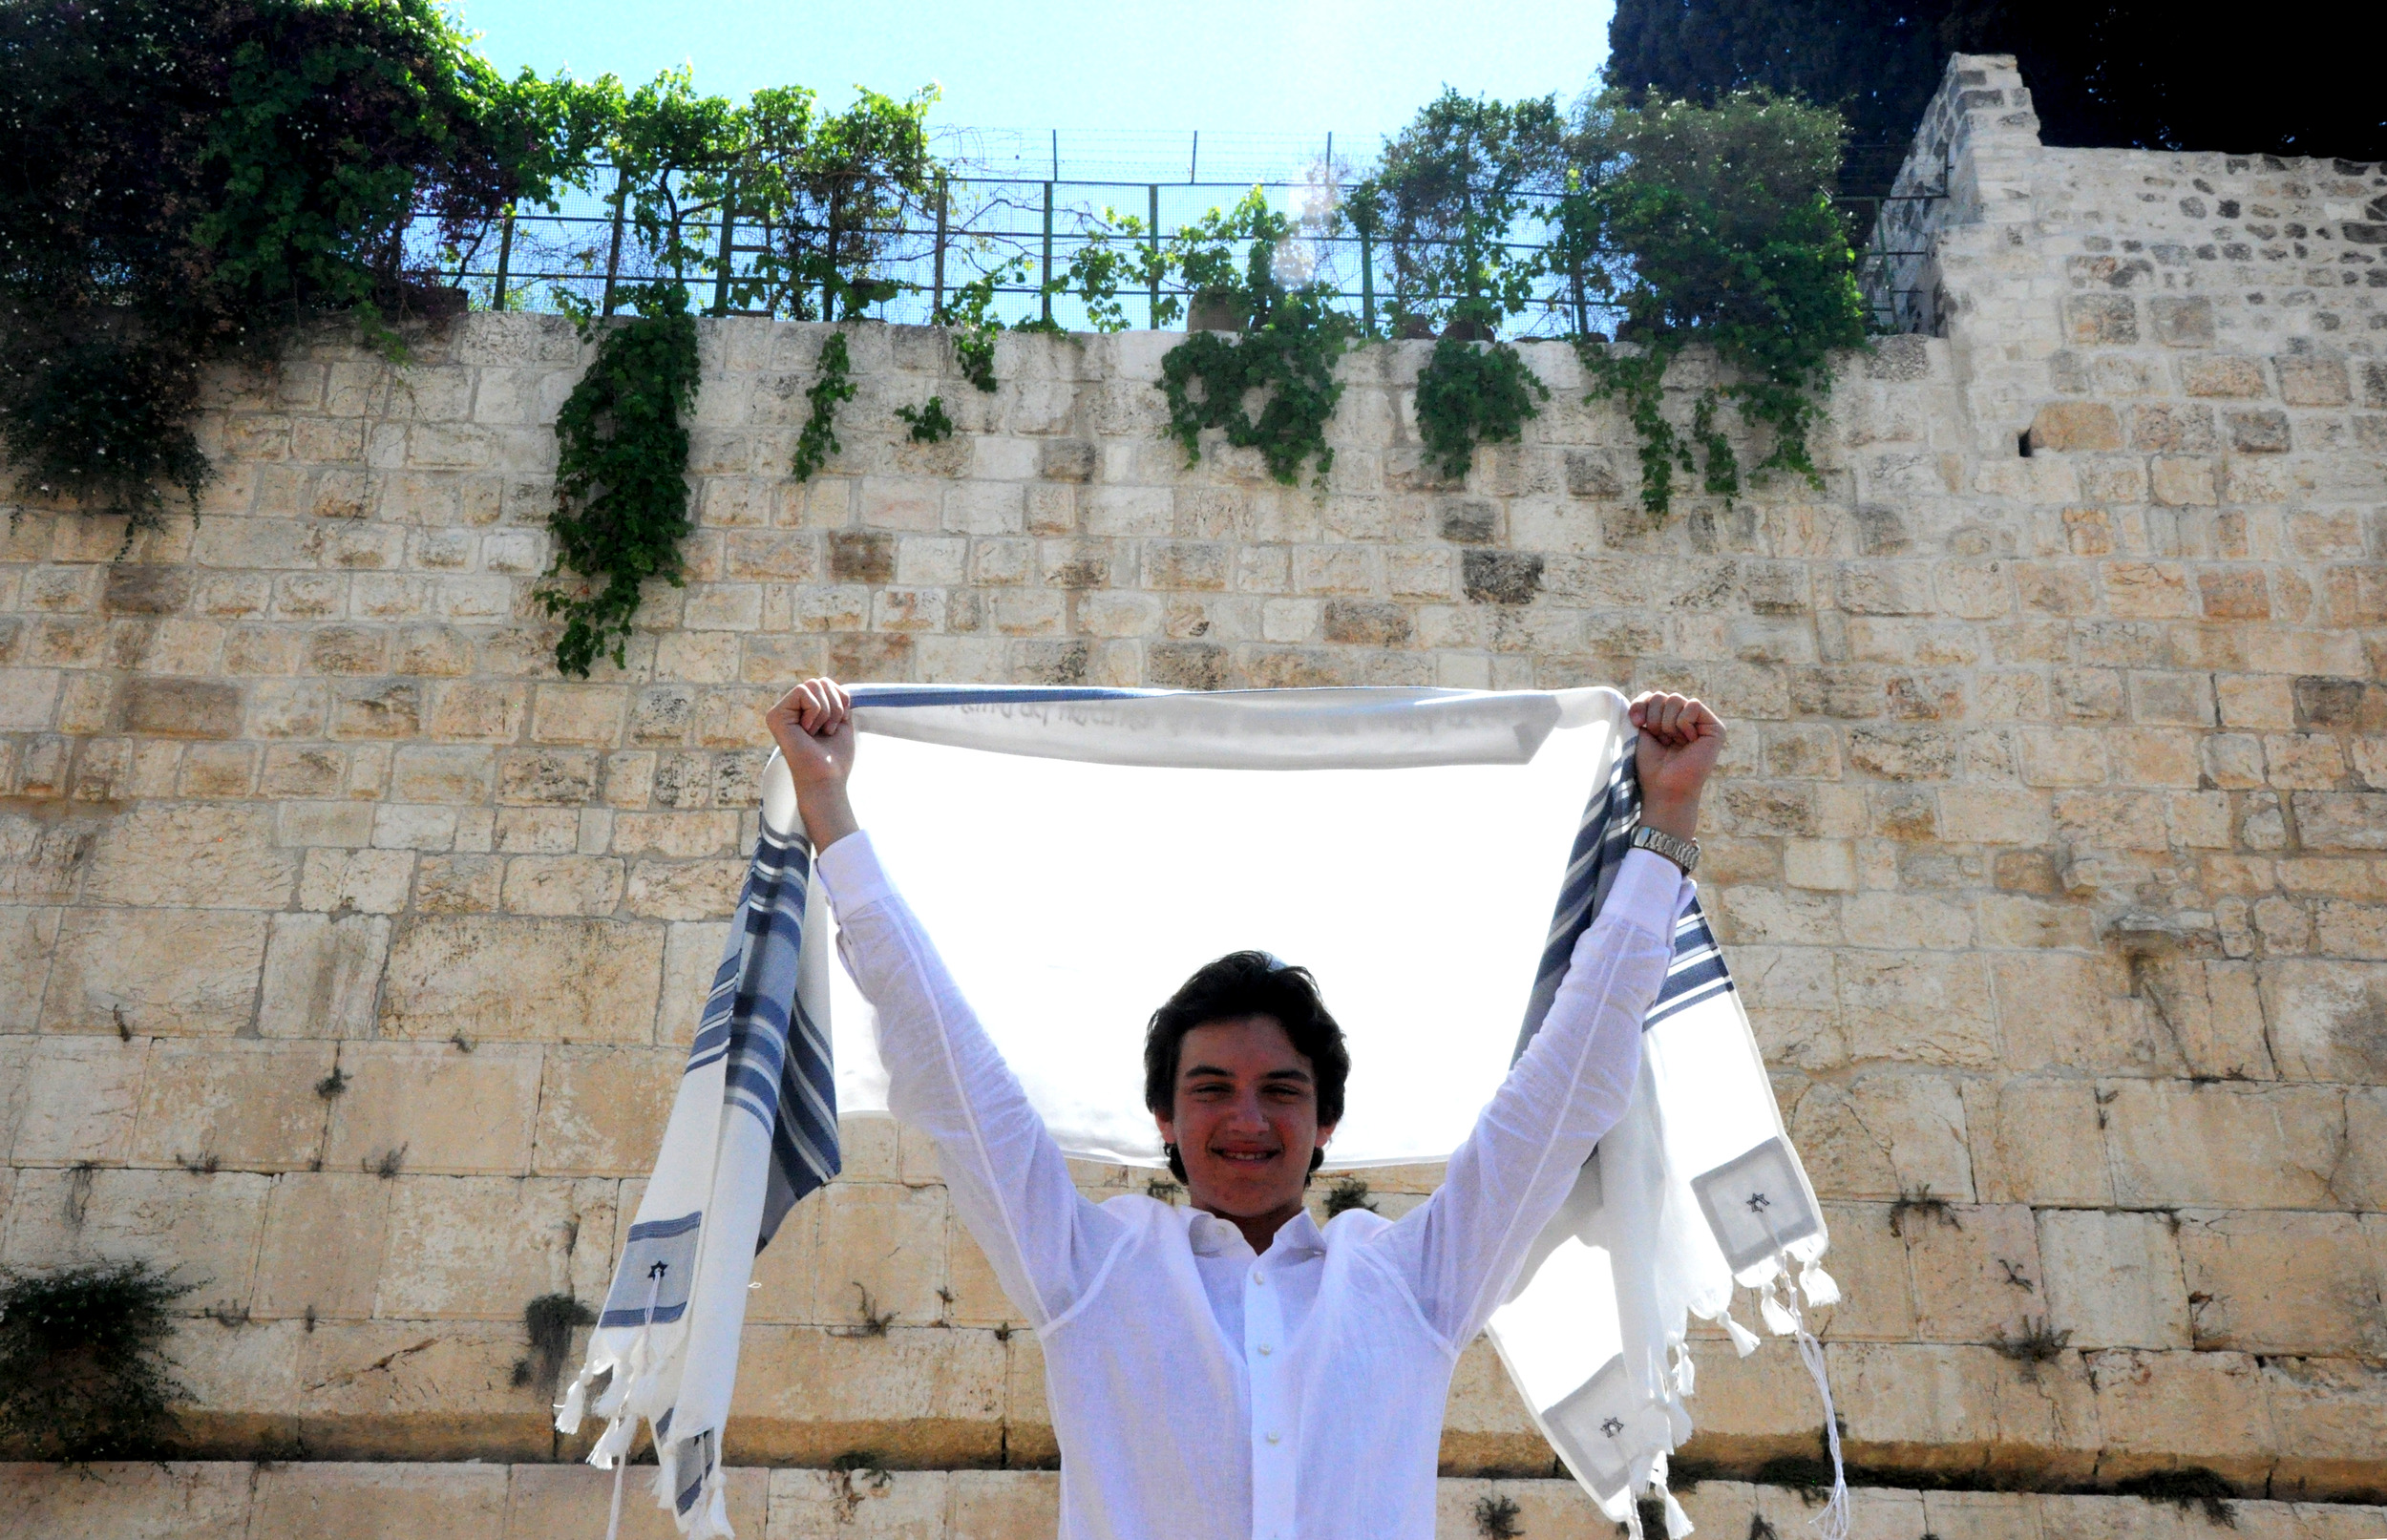 Jacob Soffer's Bar Mitzvah in Jerusalem